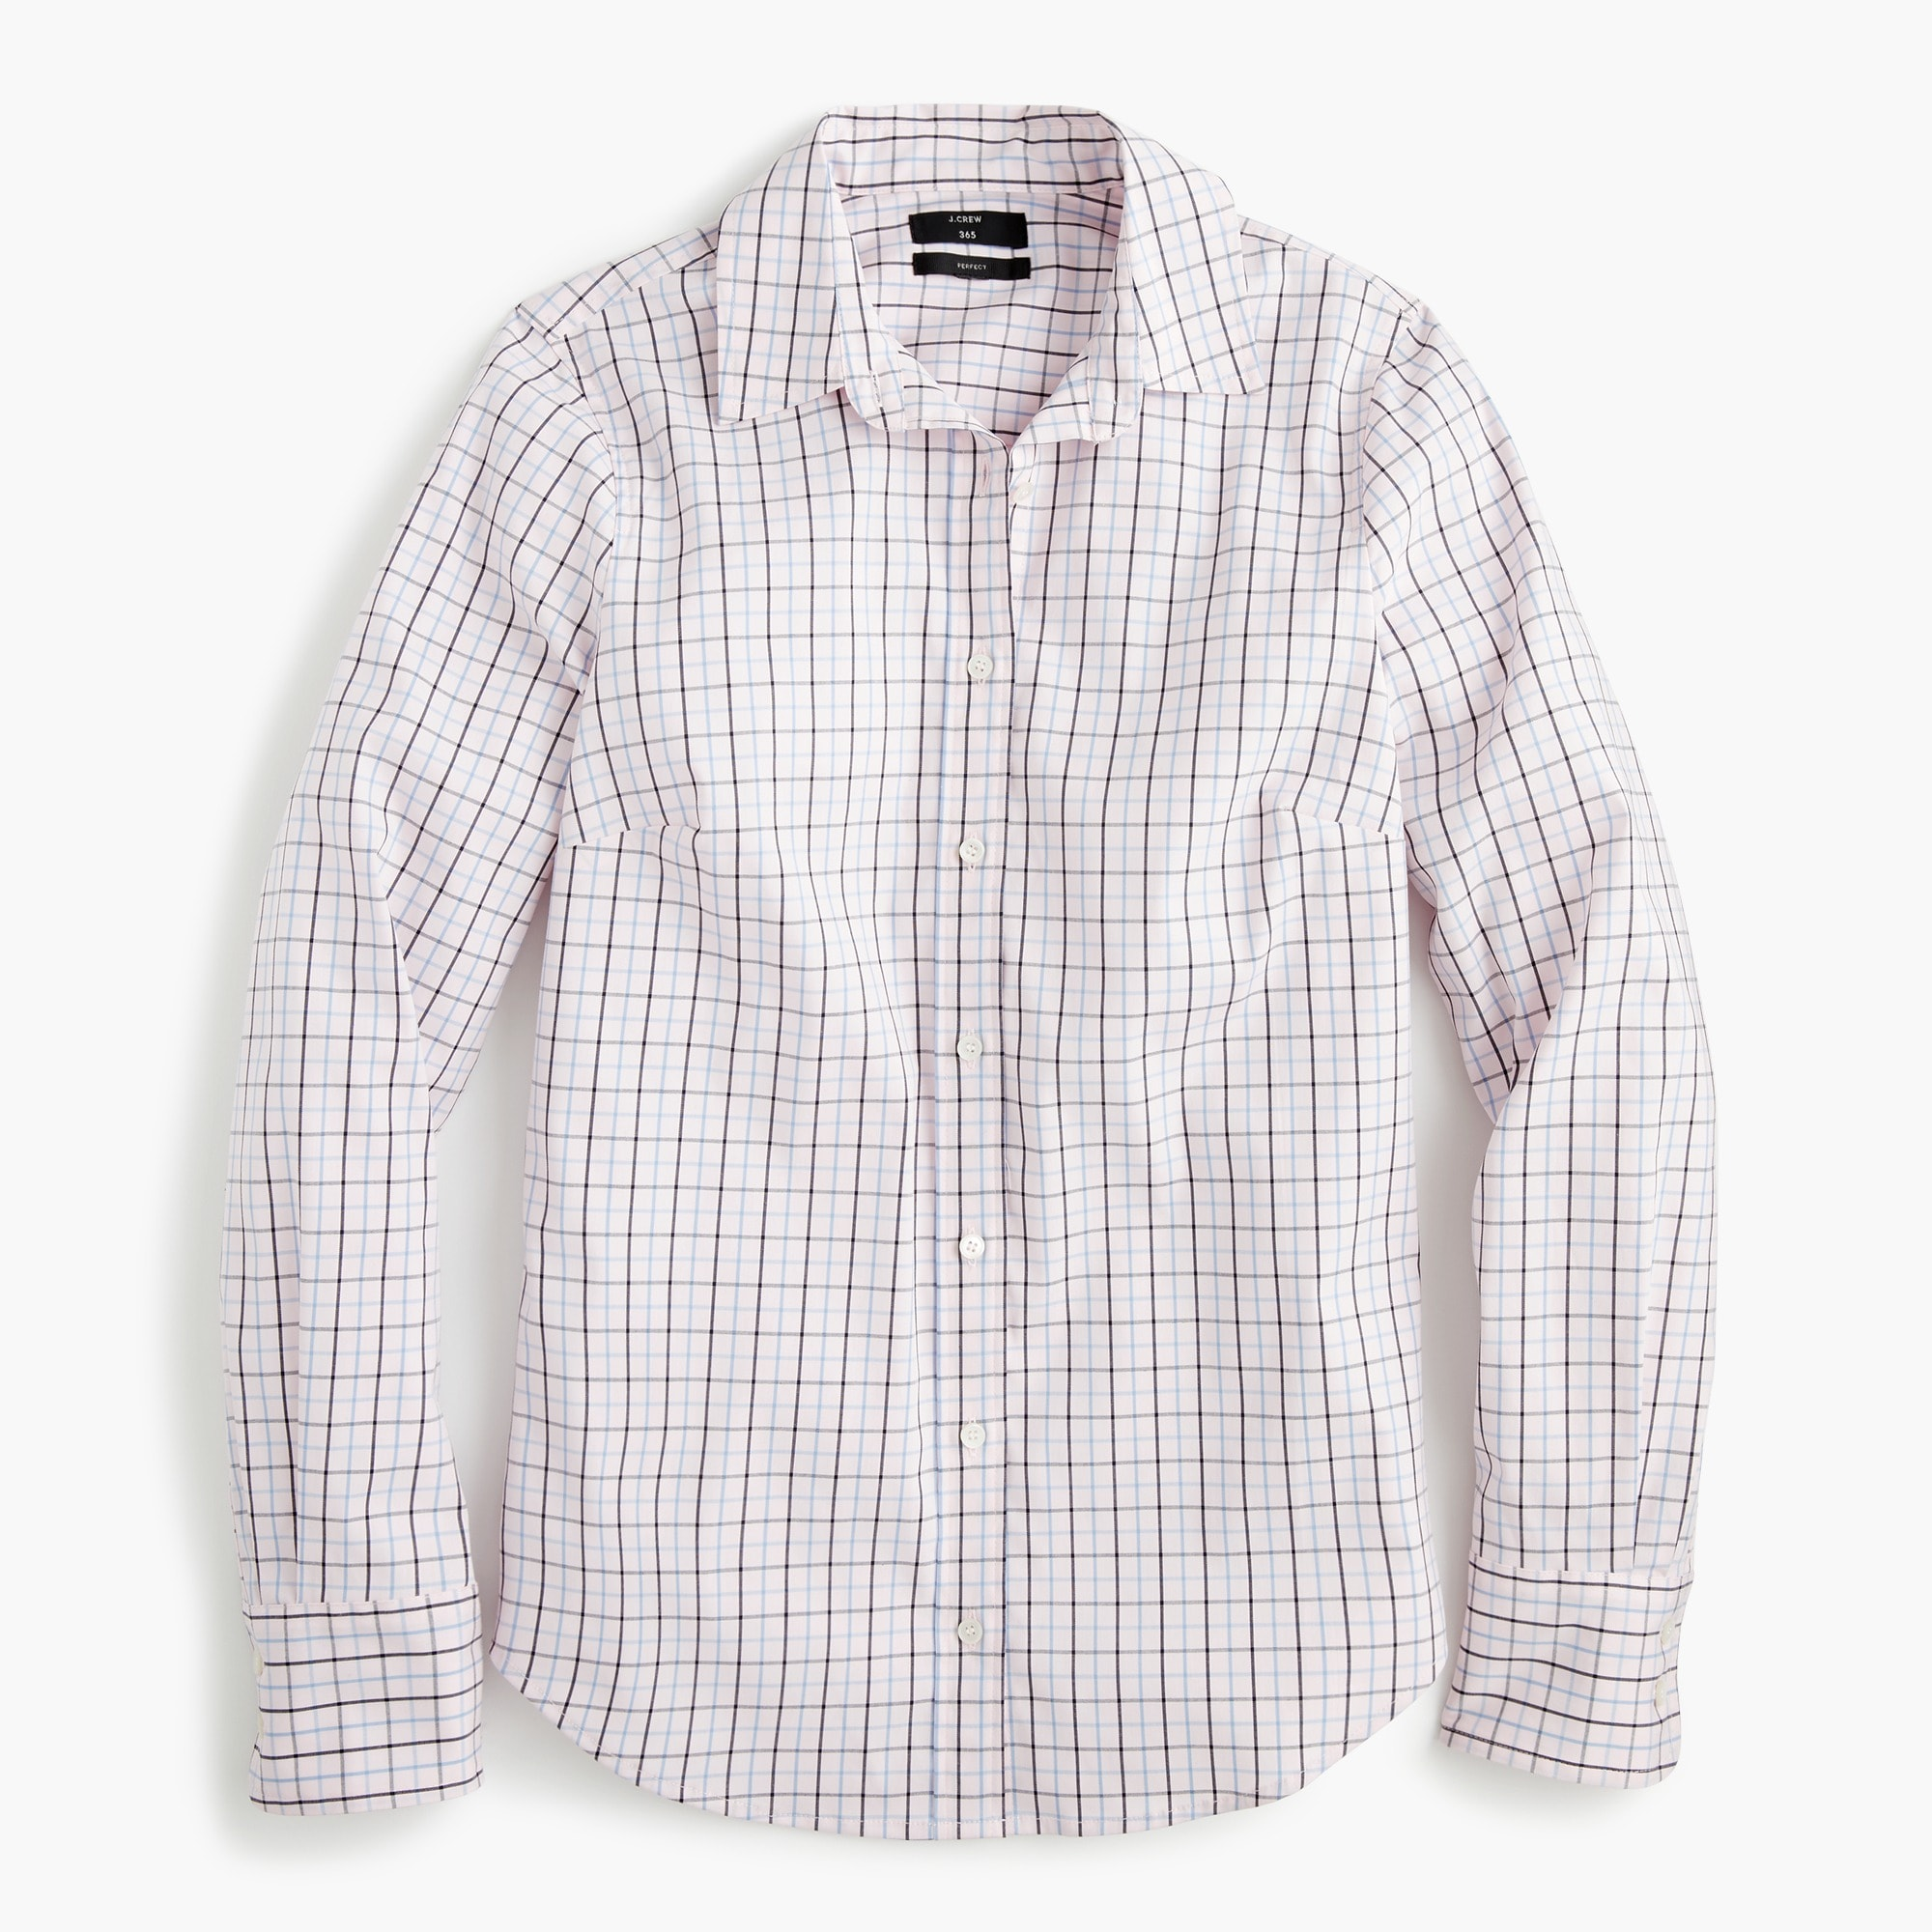 Tall slim stretch perfect shirt in meyer tattersall